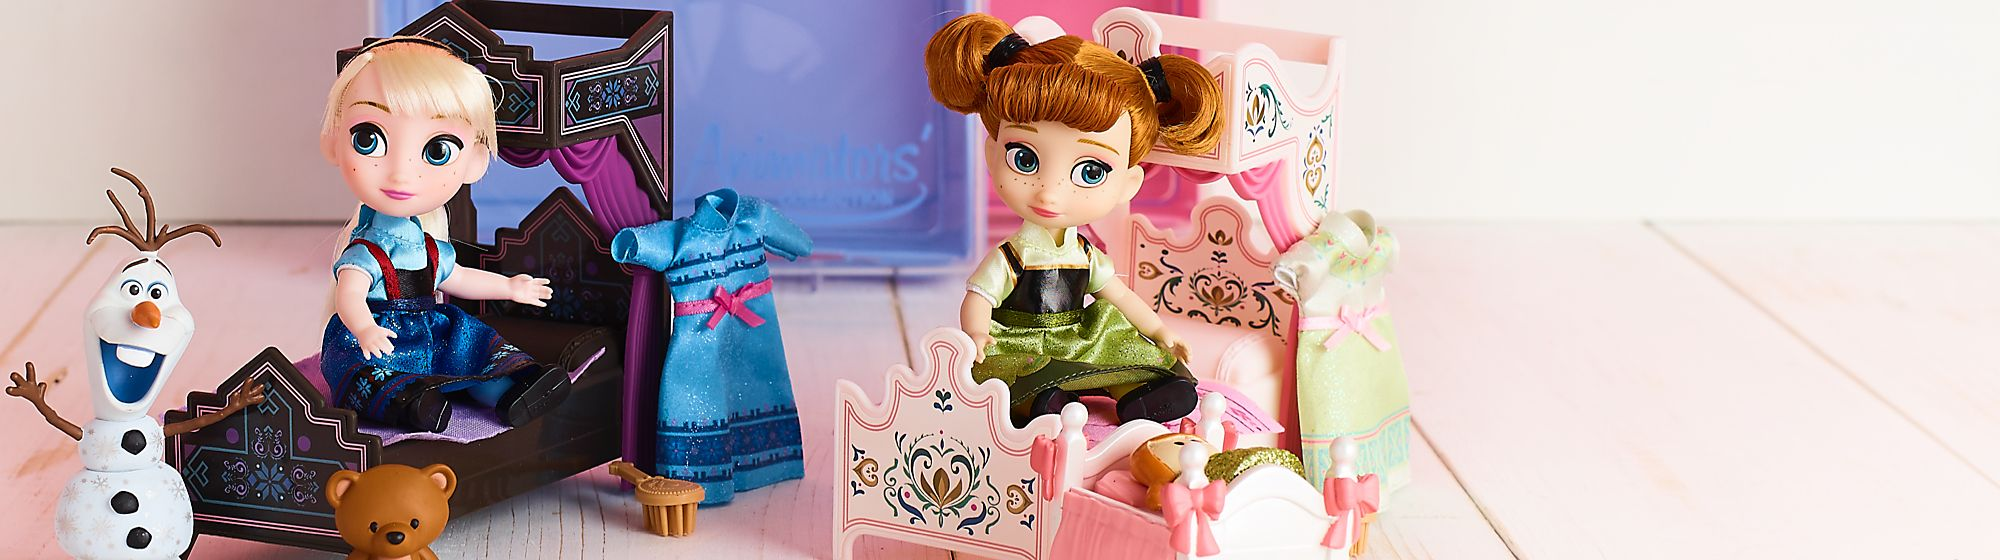 Frozen 2 Toys Discover our range of toys including playsets, soft toys,